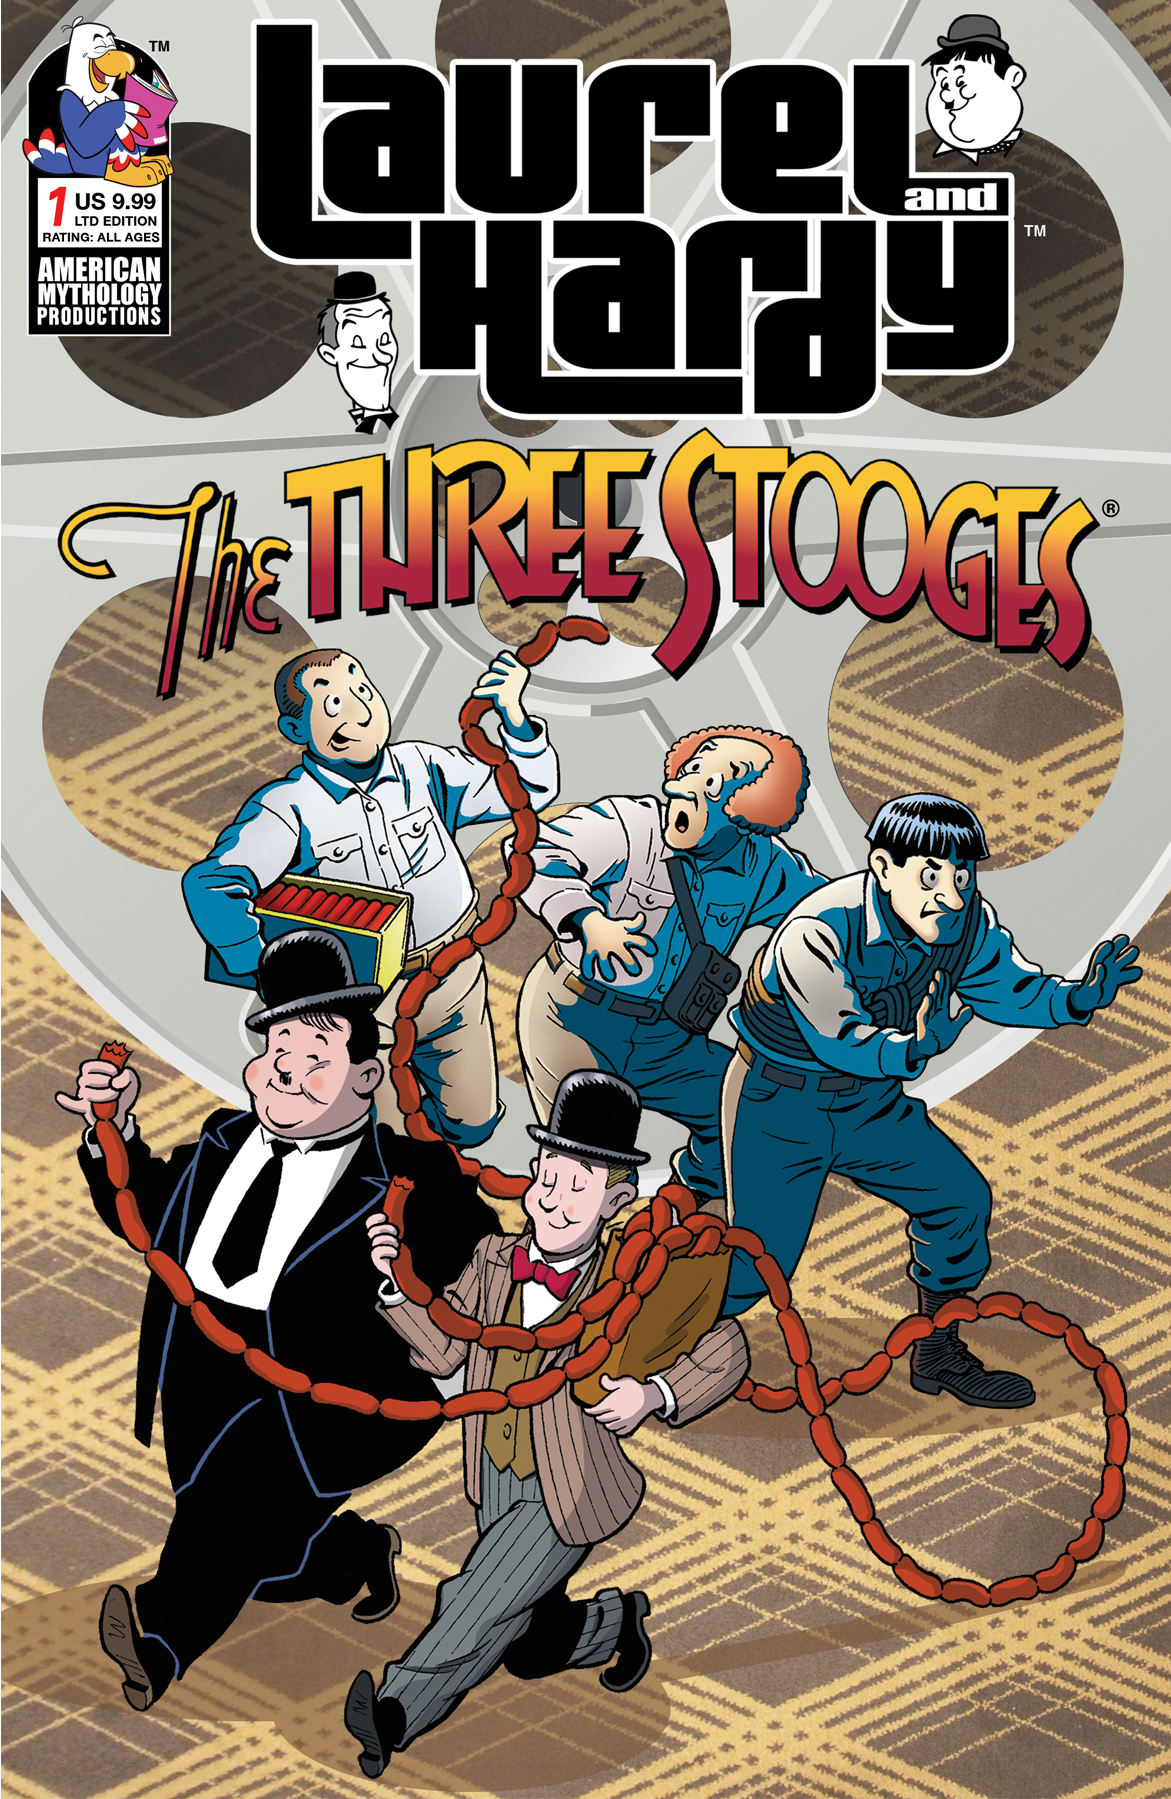 LAUREL & HARDY MEET THREE STOOGES #1 CVR C LTD CLASS CARTOON